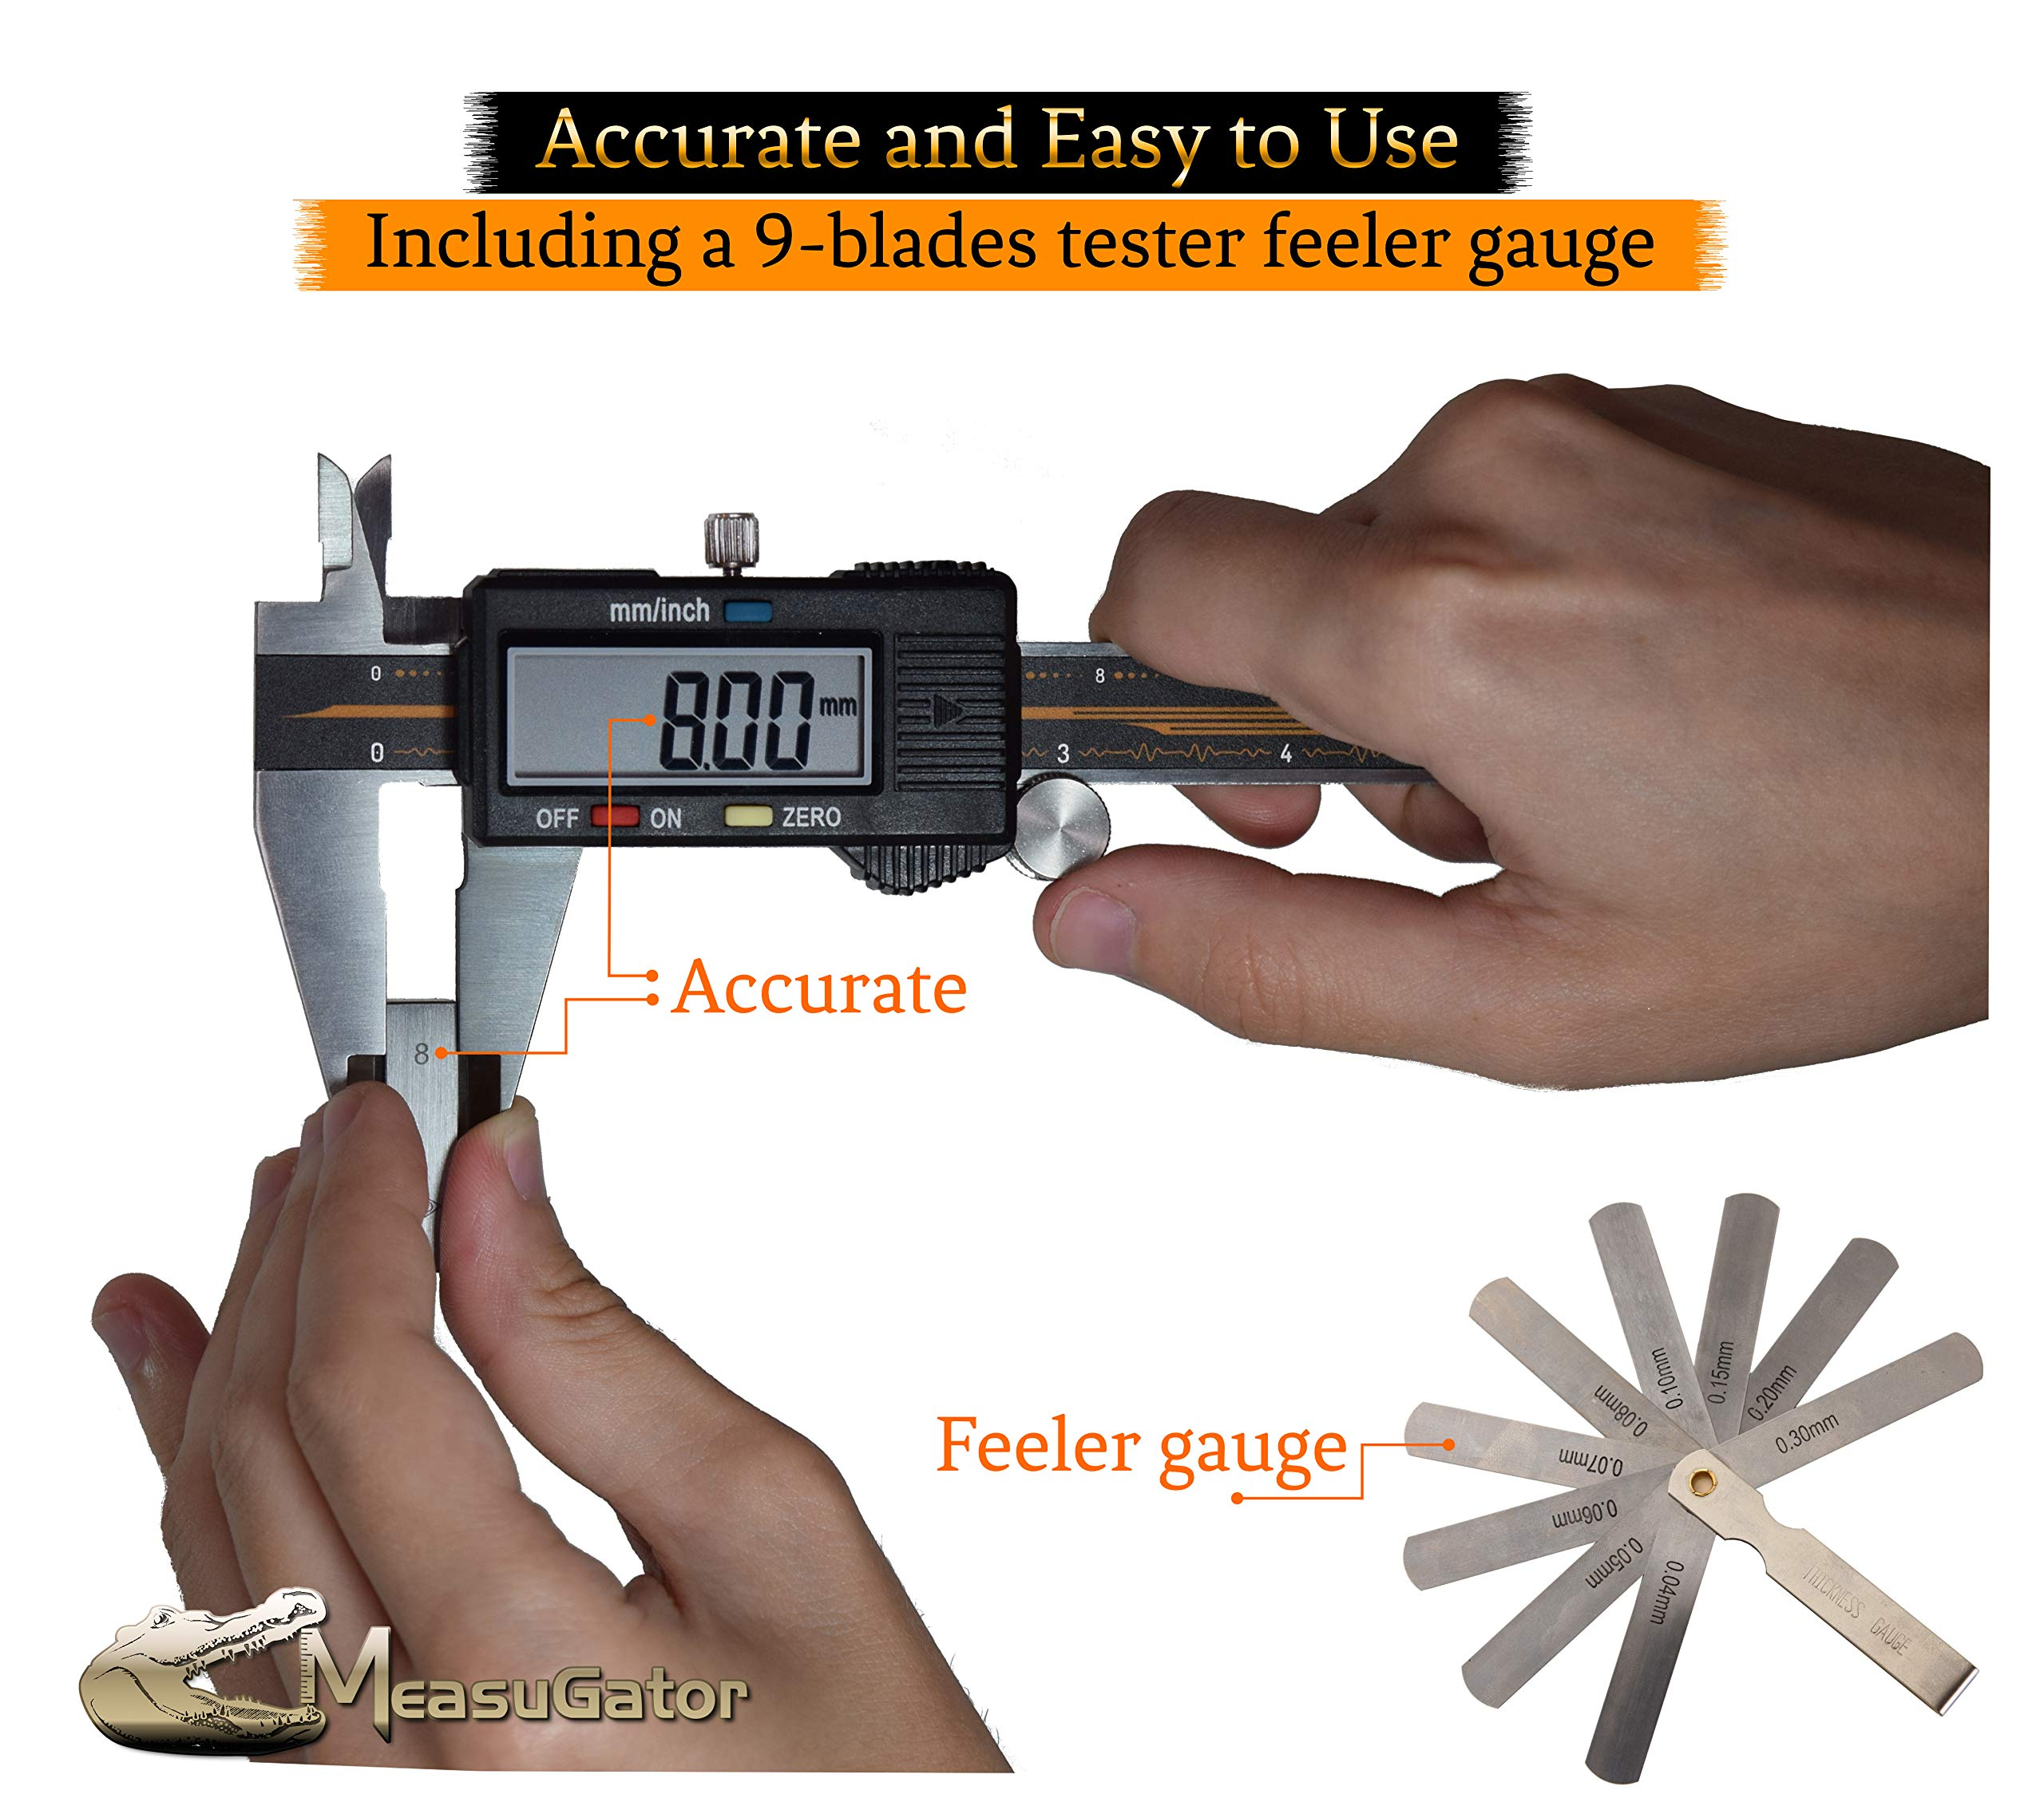 MeasuGator Lambda Digital Caliper, 3 Addons, Verifiable Accuracy, Automatic Off/On, 6 Inch/150 mm Range, SAE/Metric Modes, Premium Quality Stainless Steel Calipers, w/Spare Batteries, Feeler Gauge by MeasuGator (Image #1)